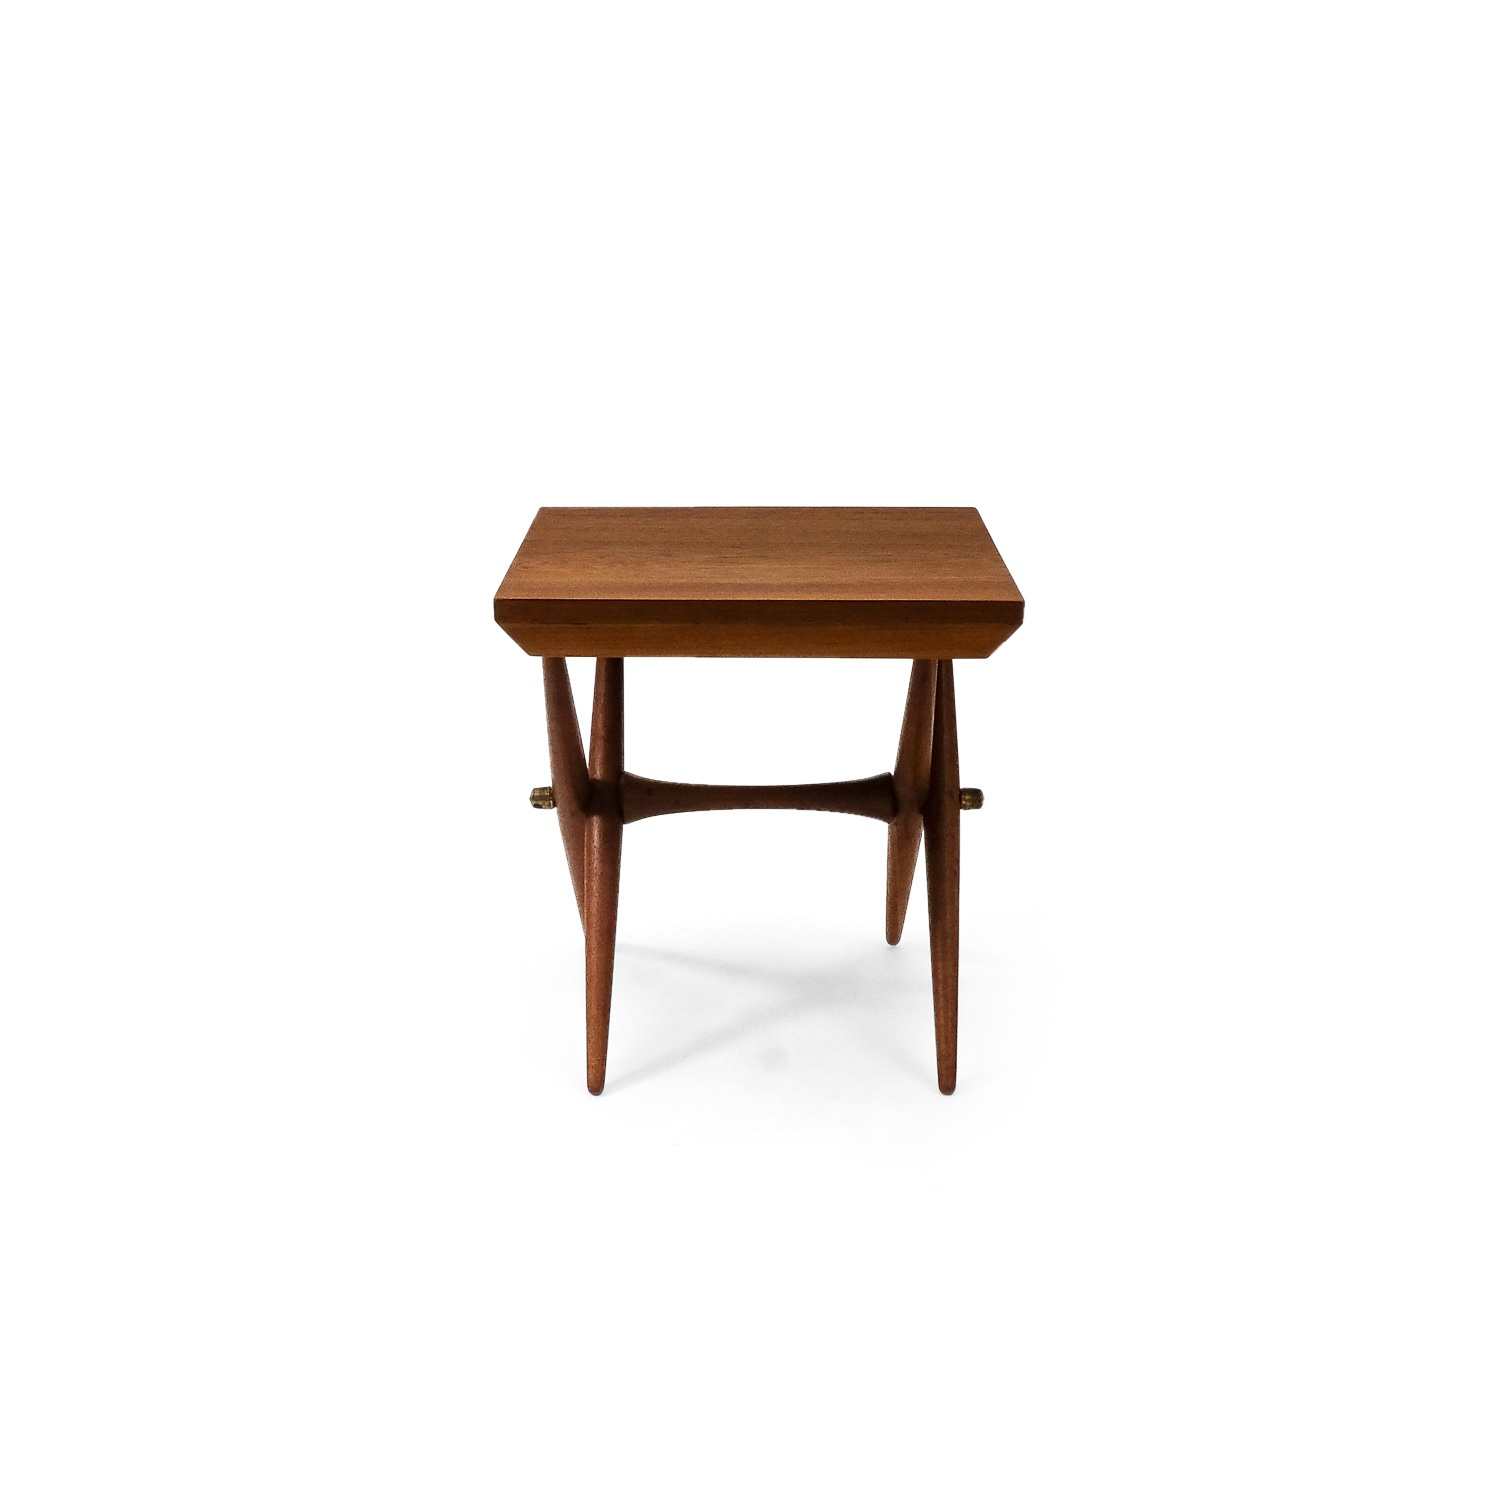 Vintage Danish Jens Quistgaard Teak Side Table 1960s